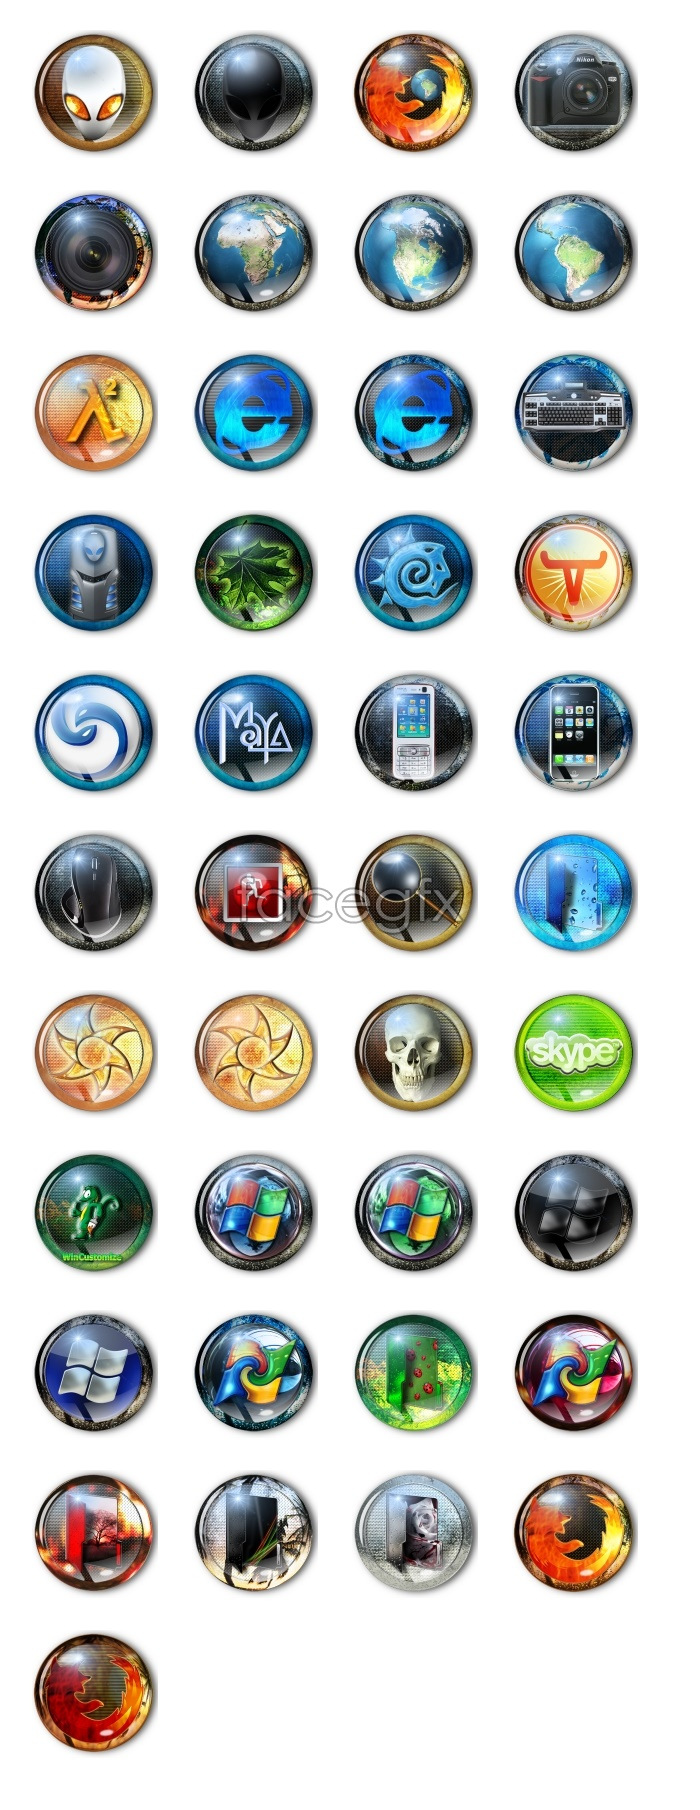 Crystal Vista system icons